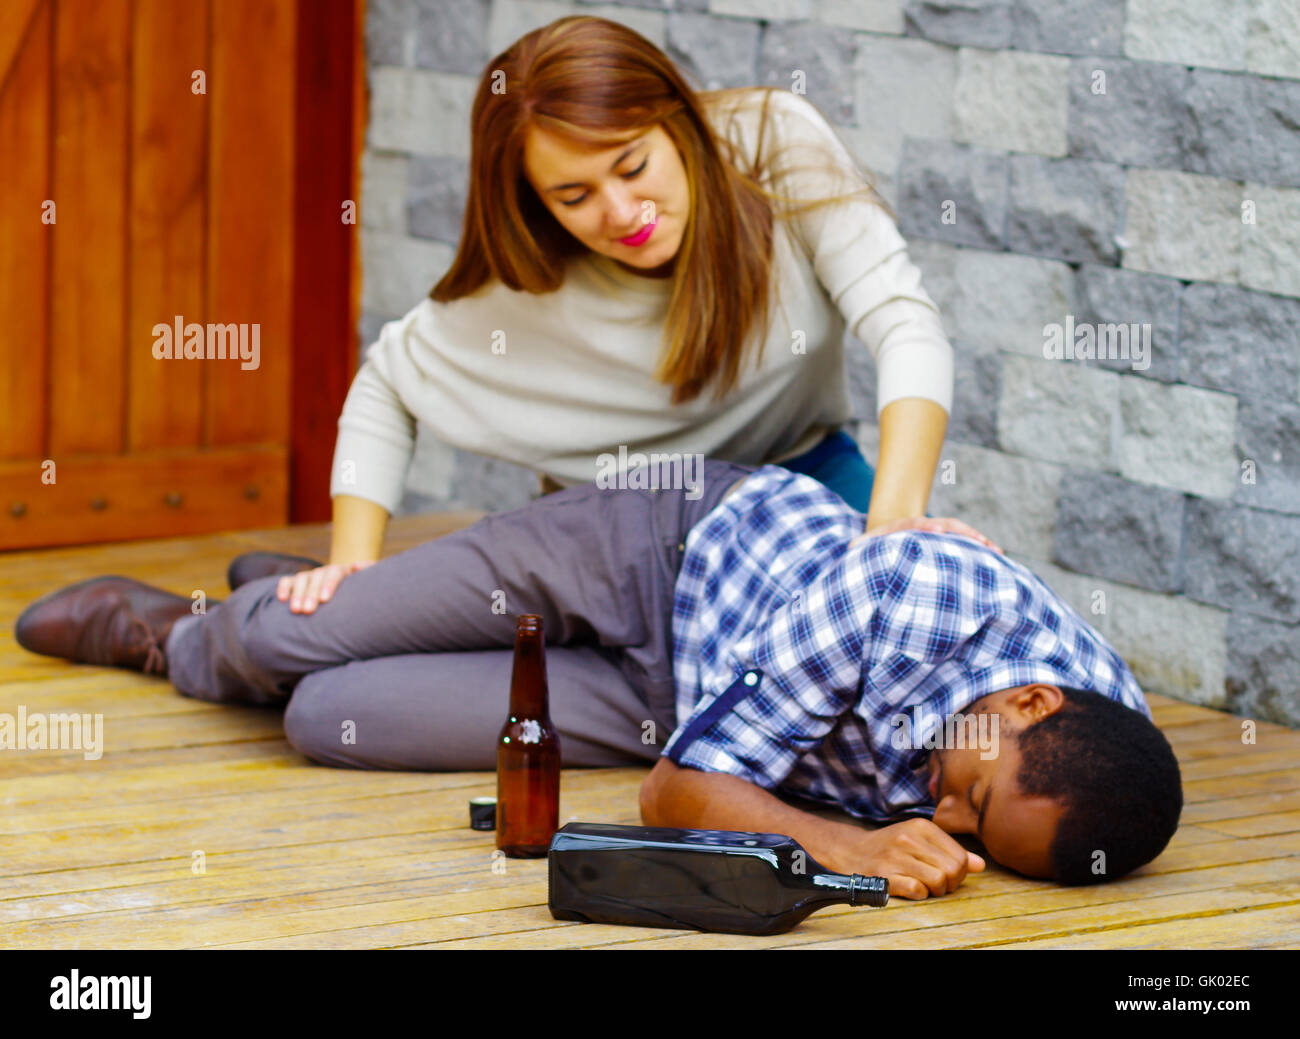 Opinion. Drunk girl pass out amusing piece